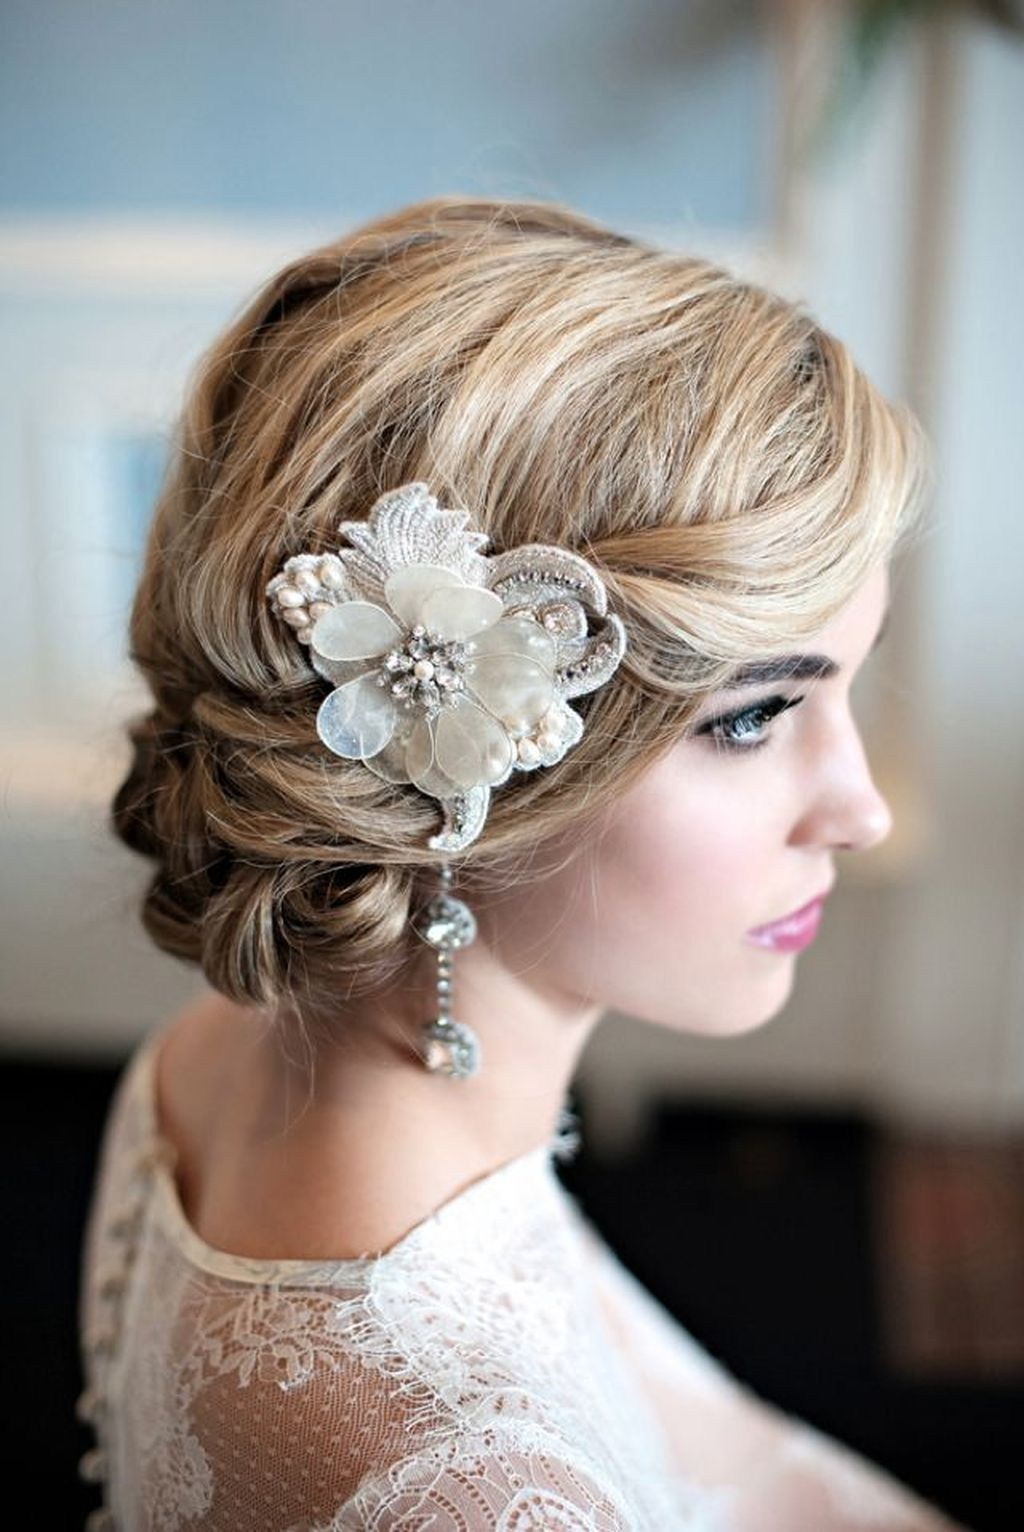 Vintage Wedding Hairstyles Unique Most Beautiful Vintage Wedding Hairstyles Ideas 26  Pinterest